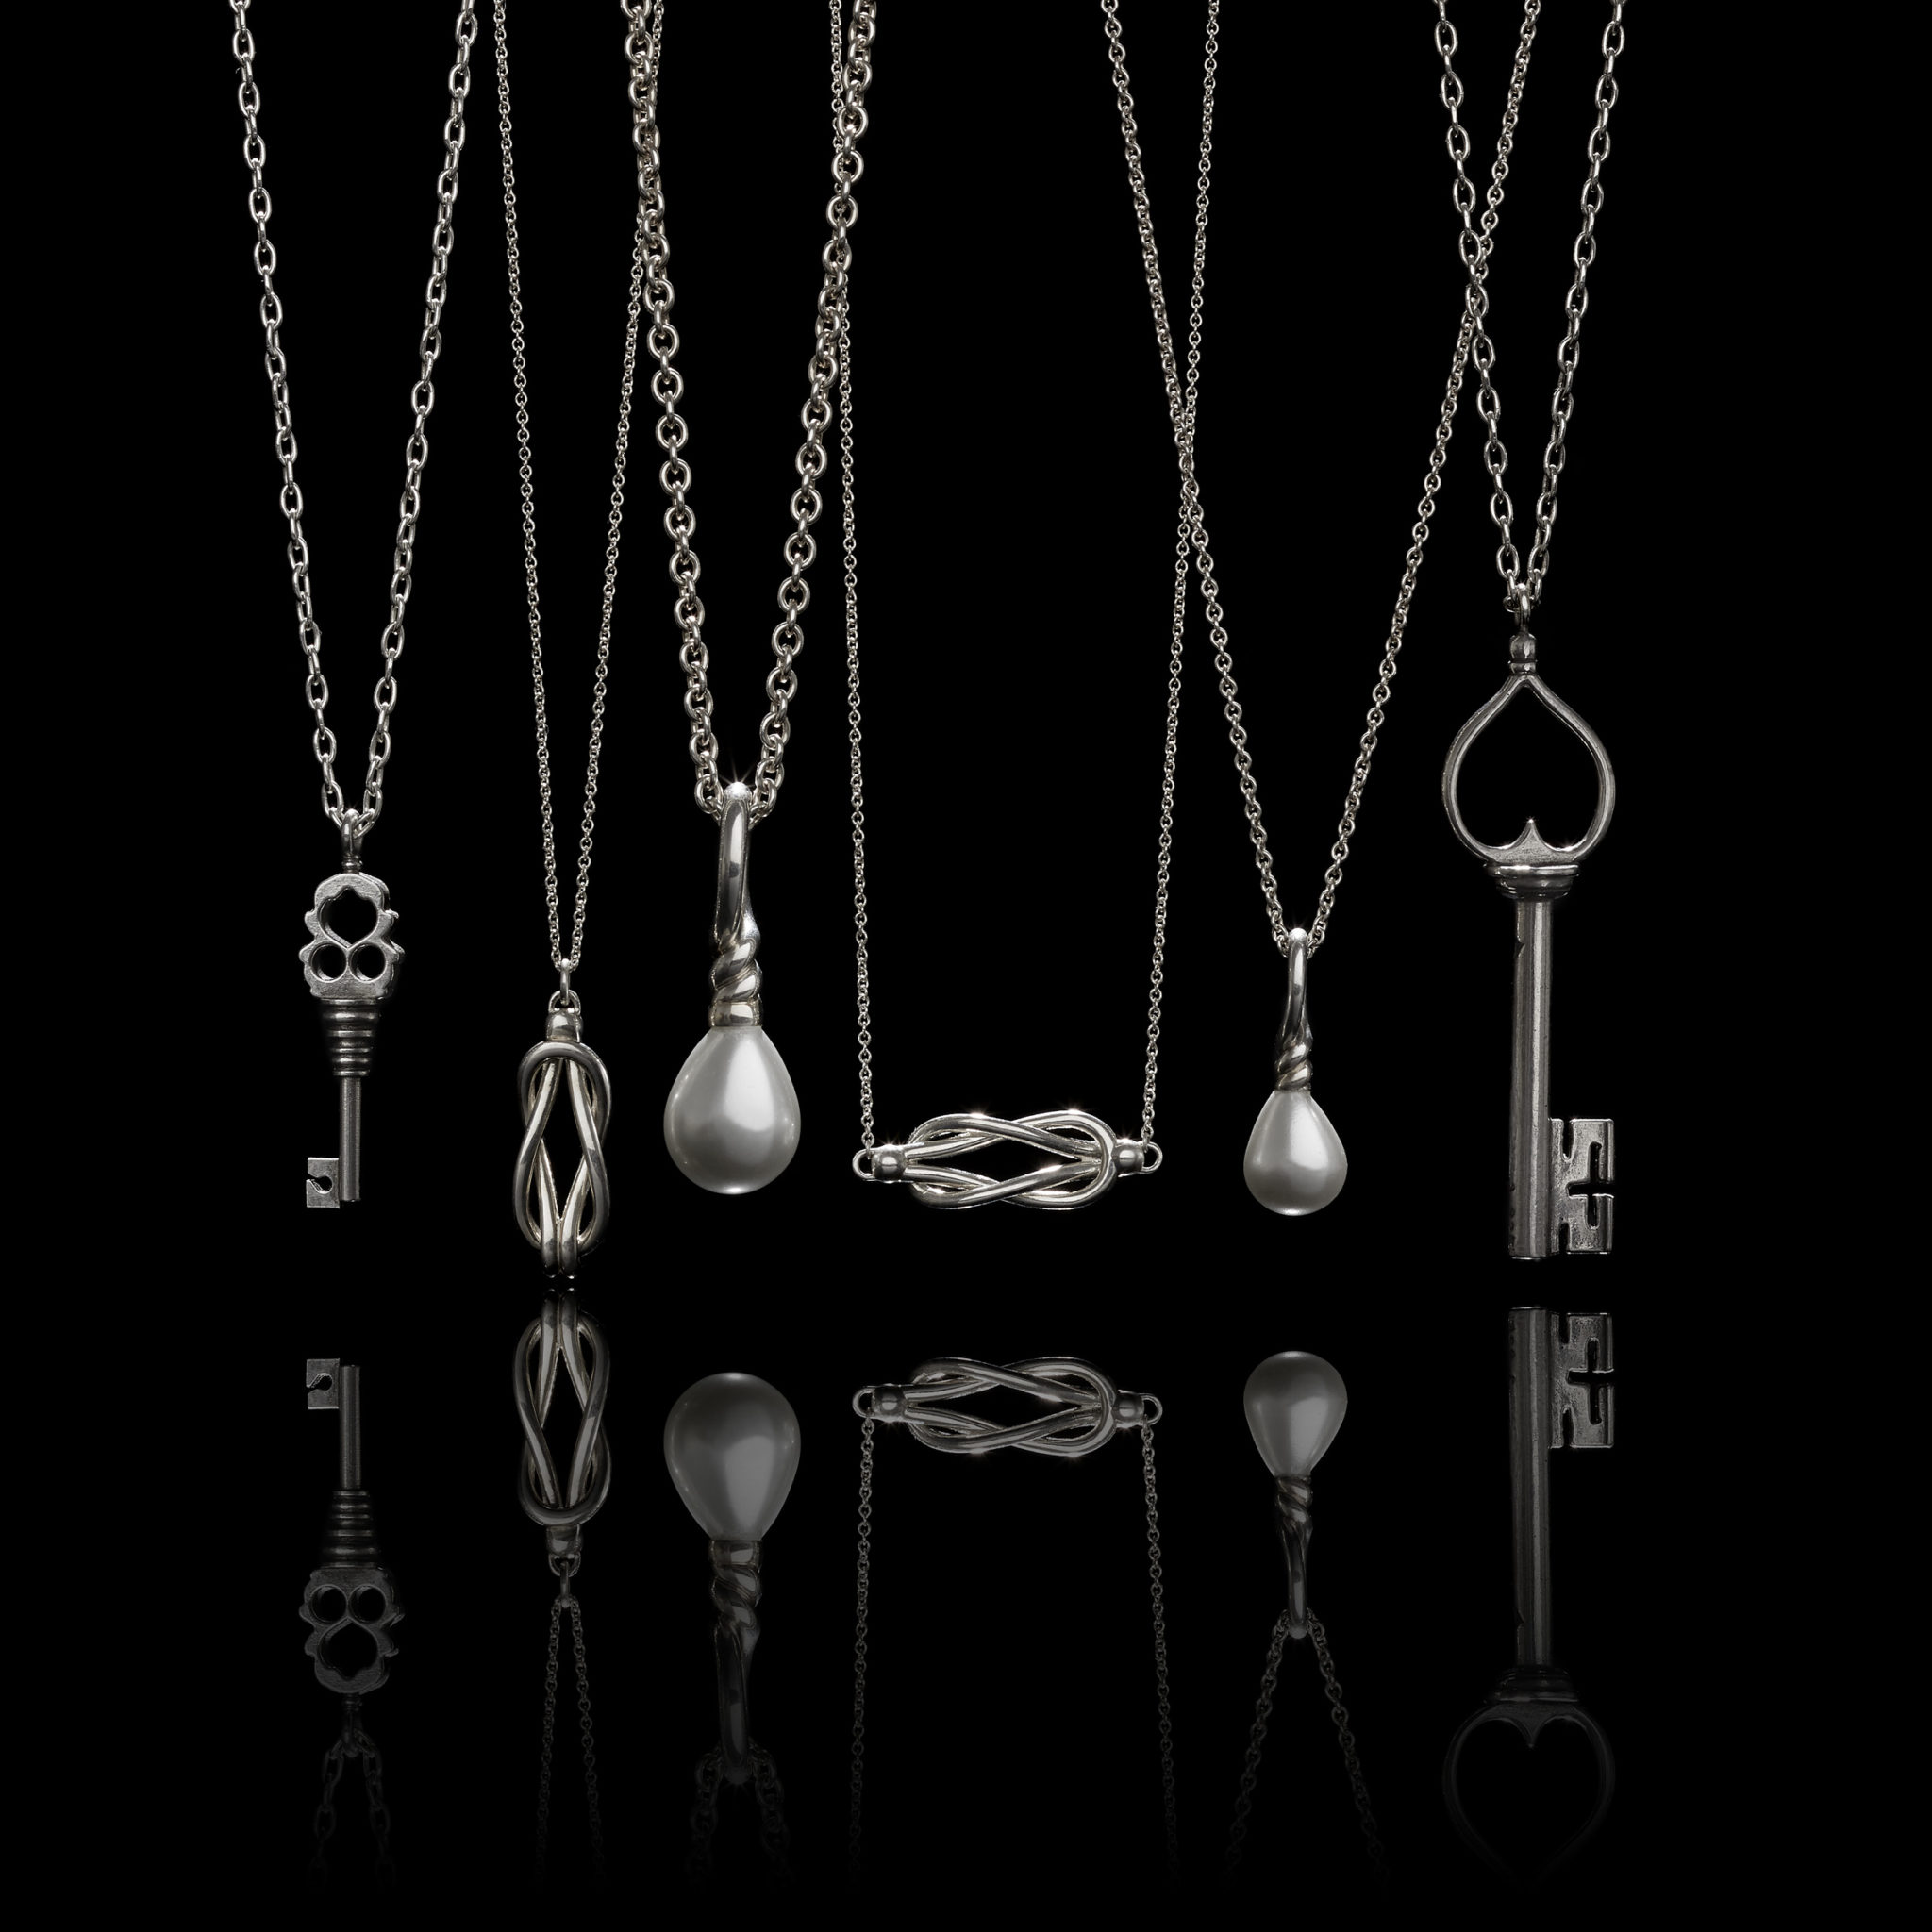 A group of silver pendant necklaces including keys, pearls, and knots with moody lighting, a reflection, and a black background